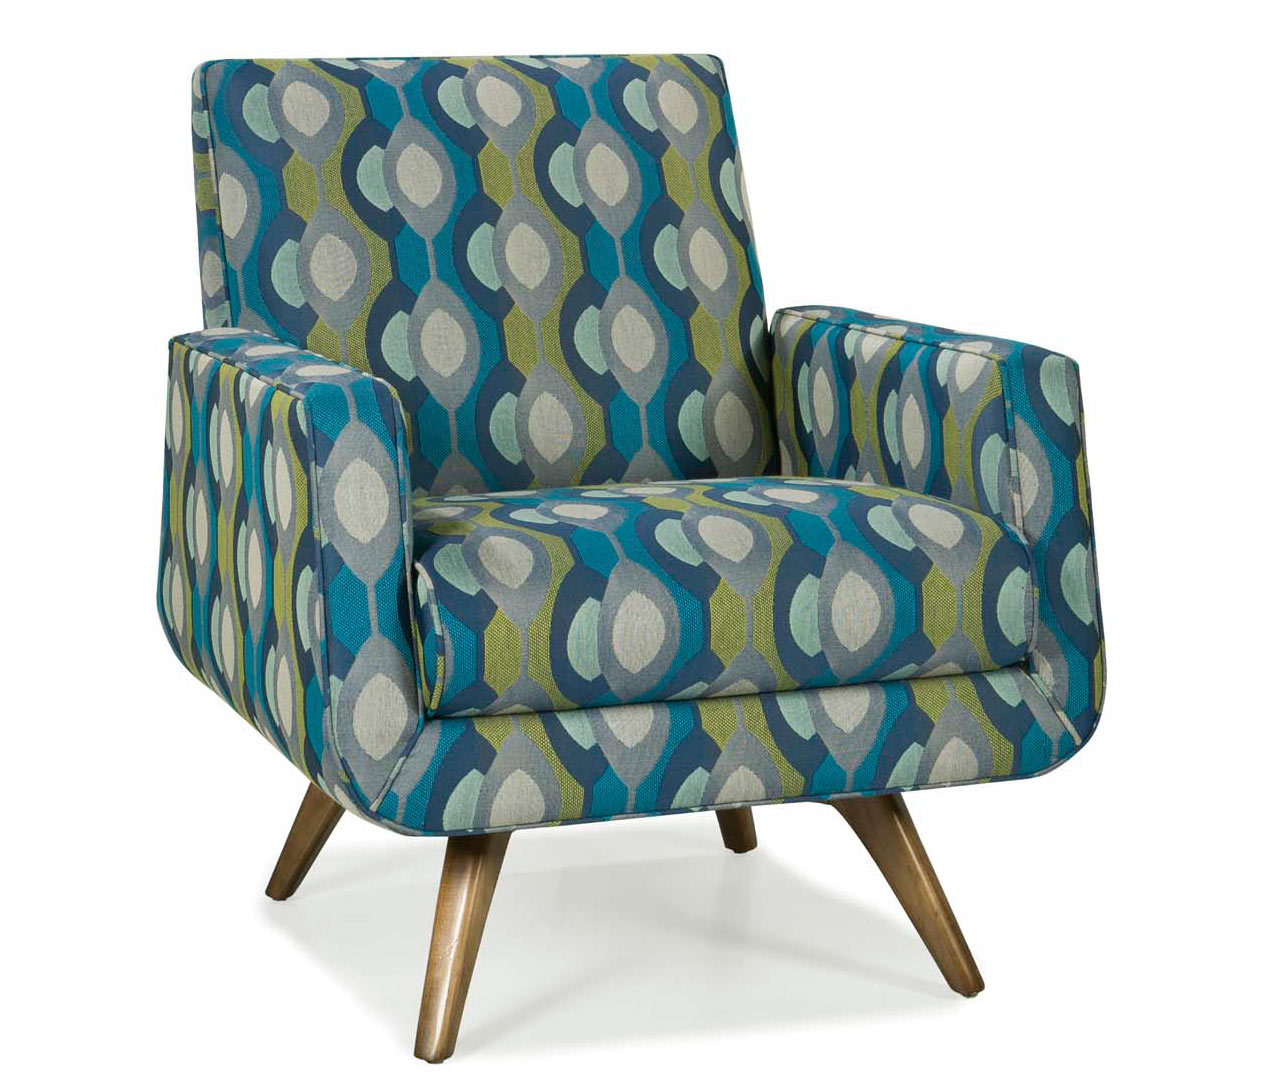 patterned-mid-century-chair-avenue-62-younger-furniture